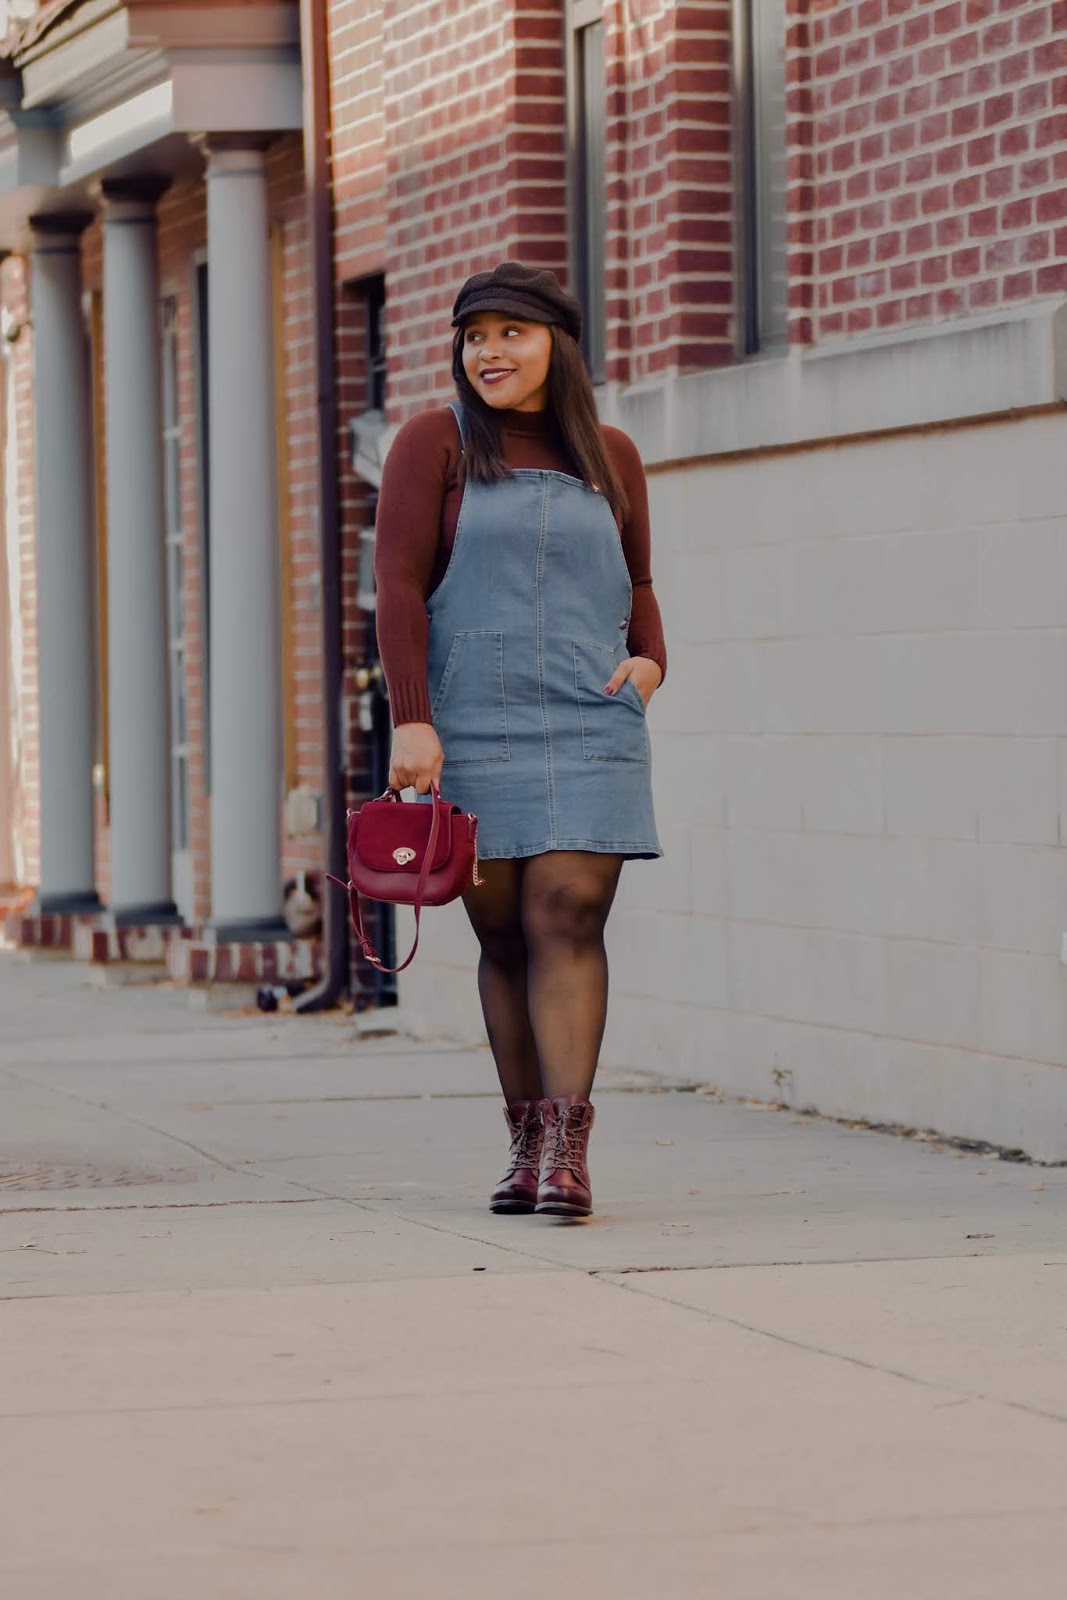 pattys kloset, fall fashion, fall outfit ideas, affirmations, motivational quotes, fashion moms.